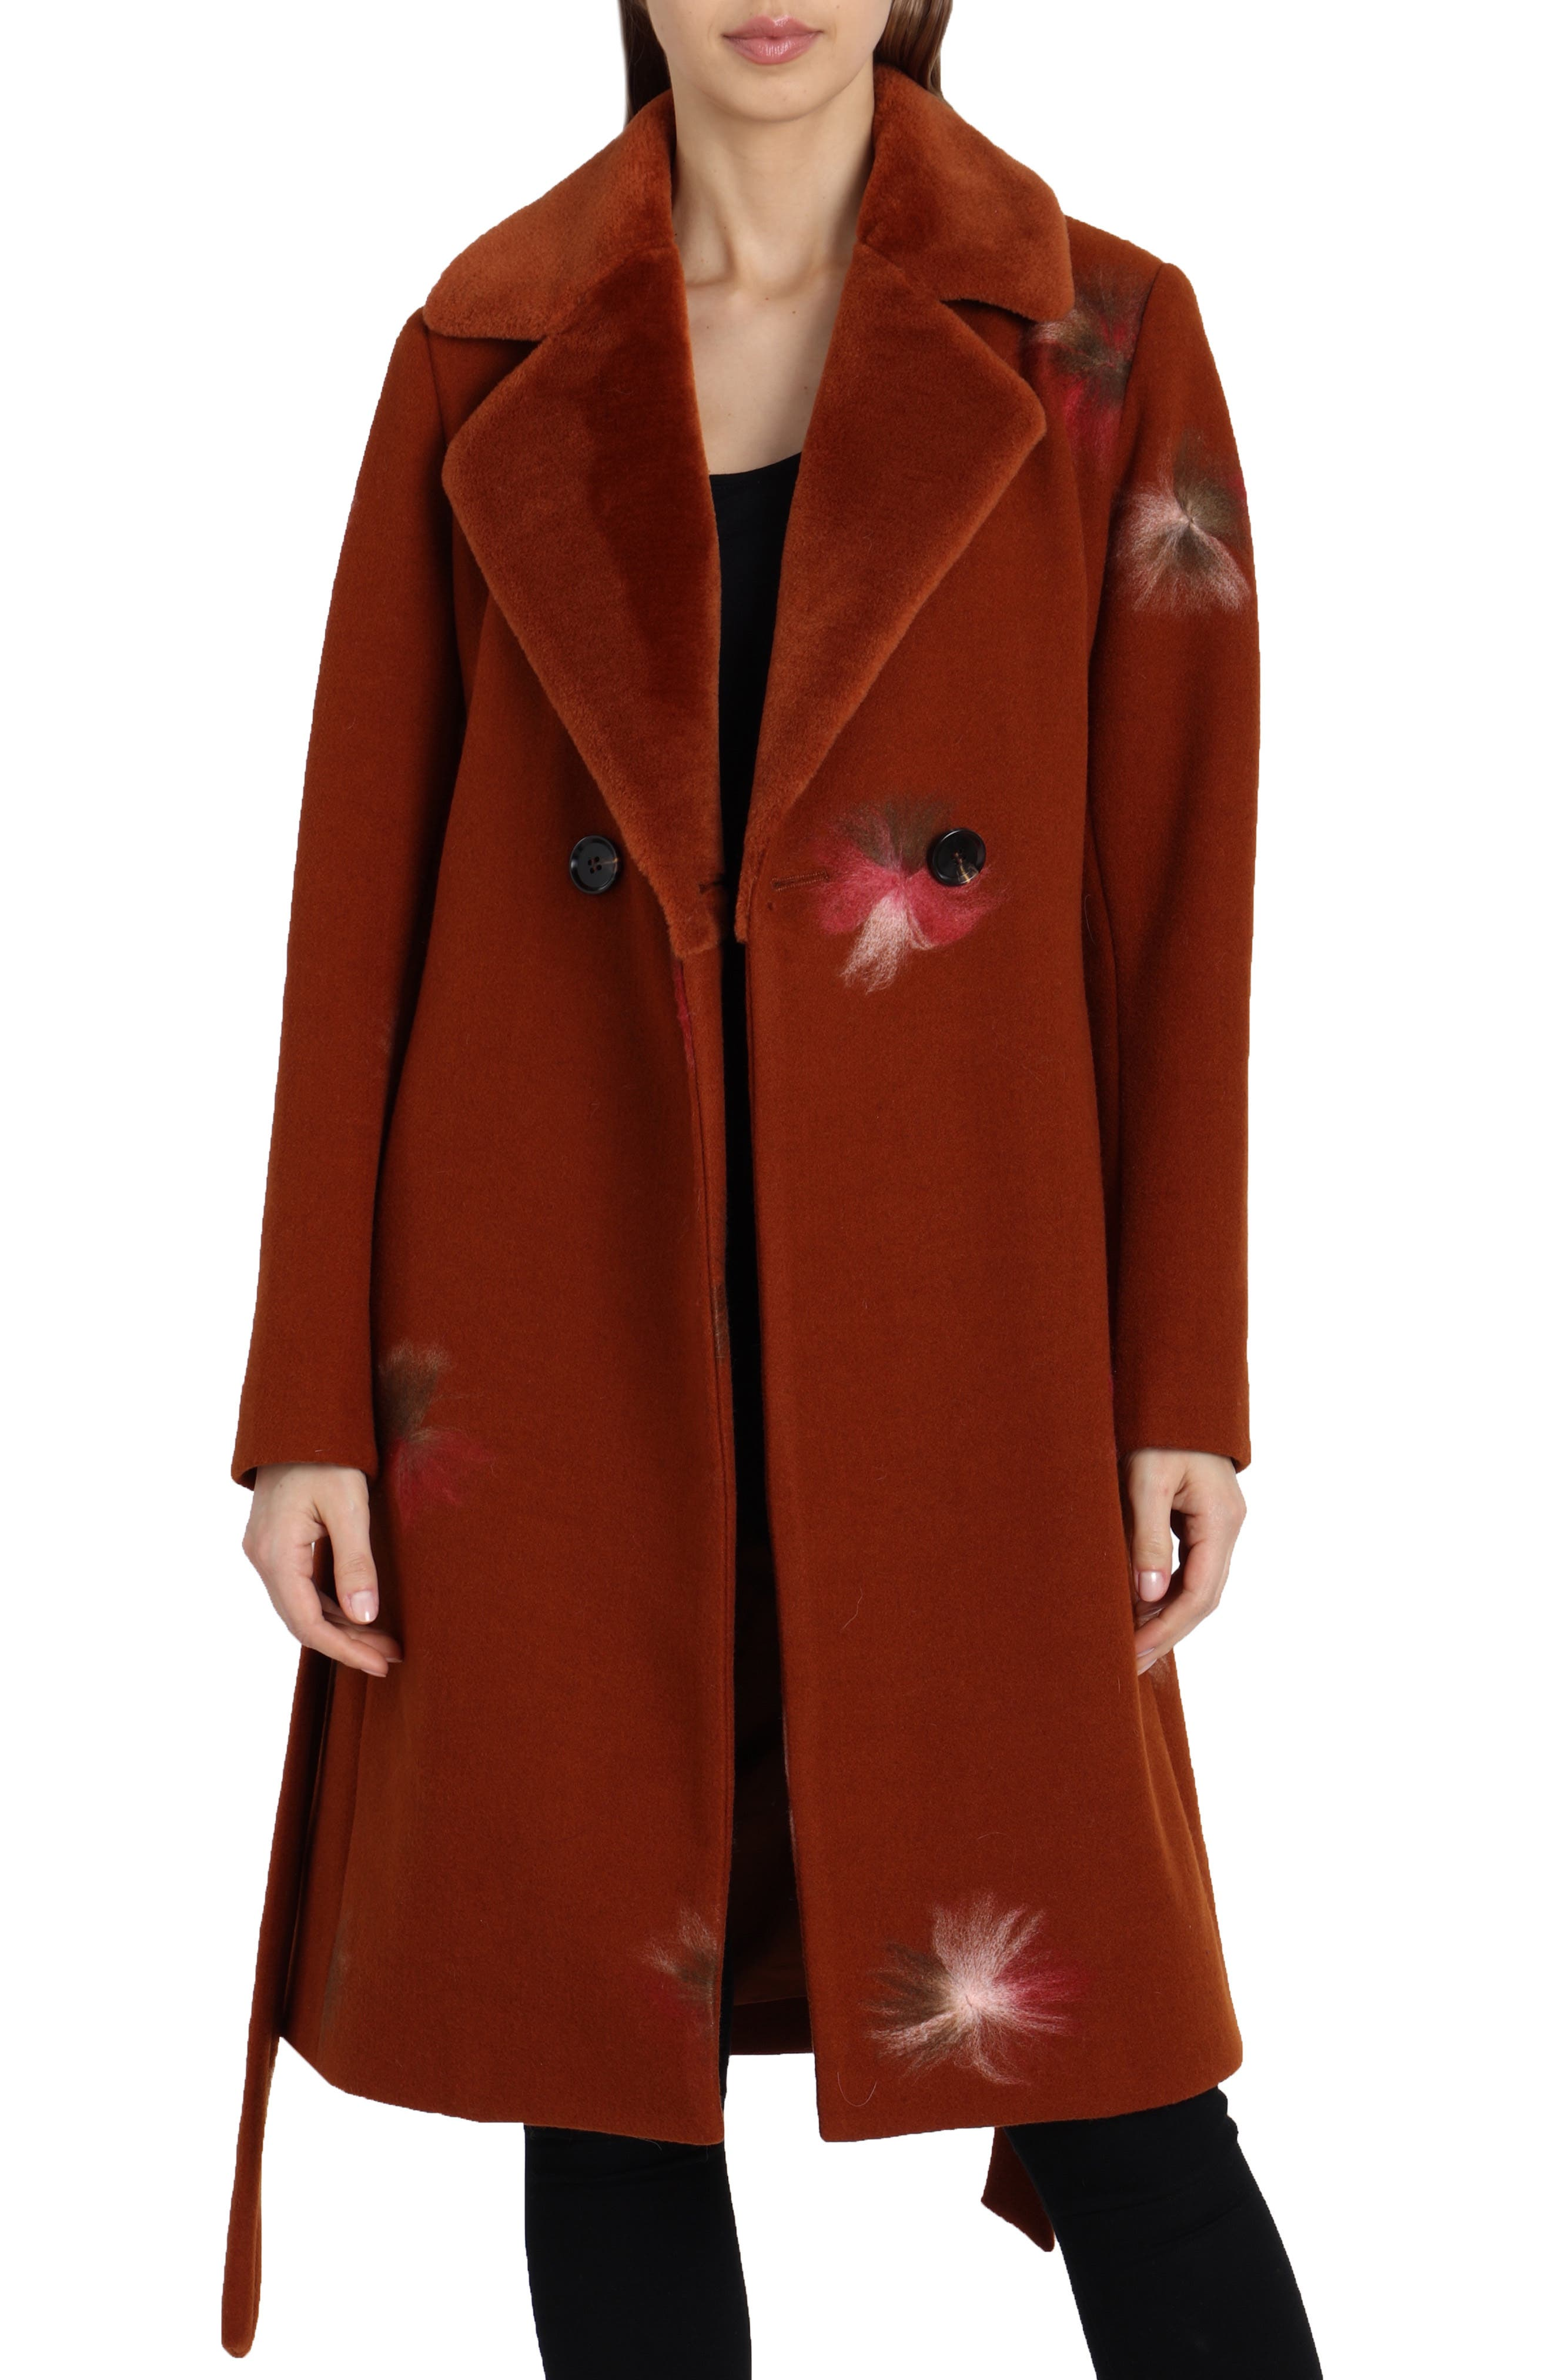 BADGLEY MISCHKA COLLECTION,                             Badgley Mischka Felted Embroidery Wool Blend Coat,                             Main thumbnail 1, color,                             801